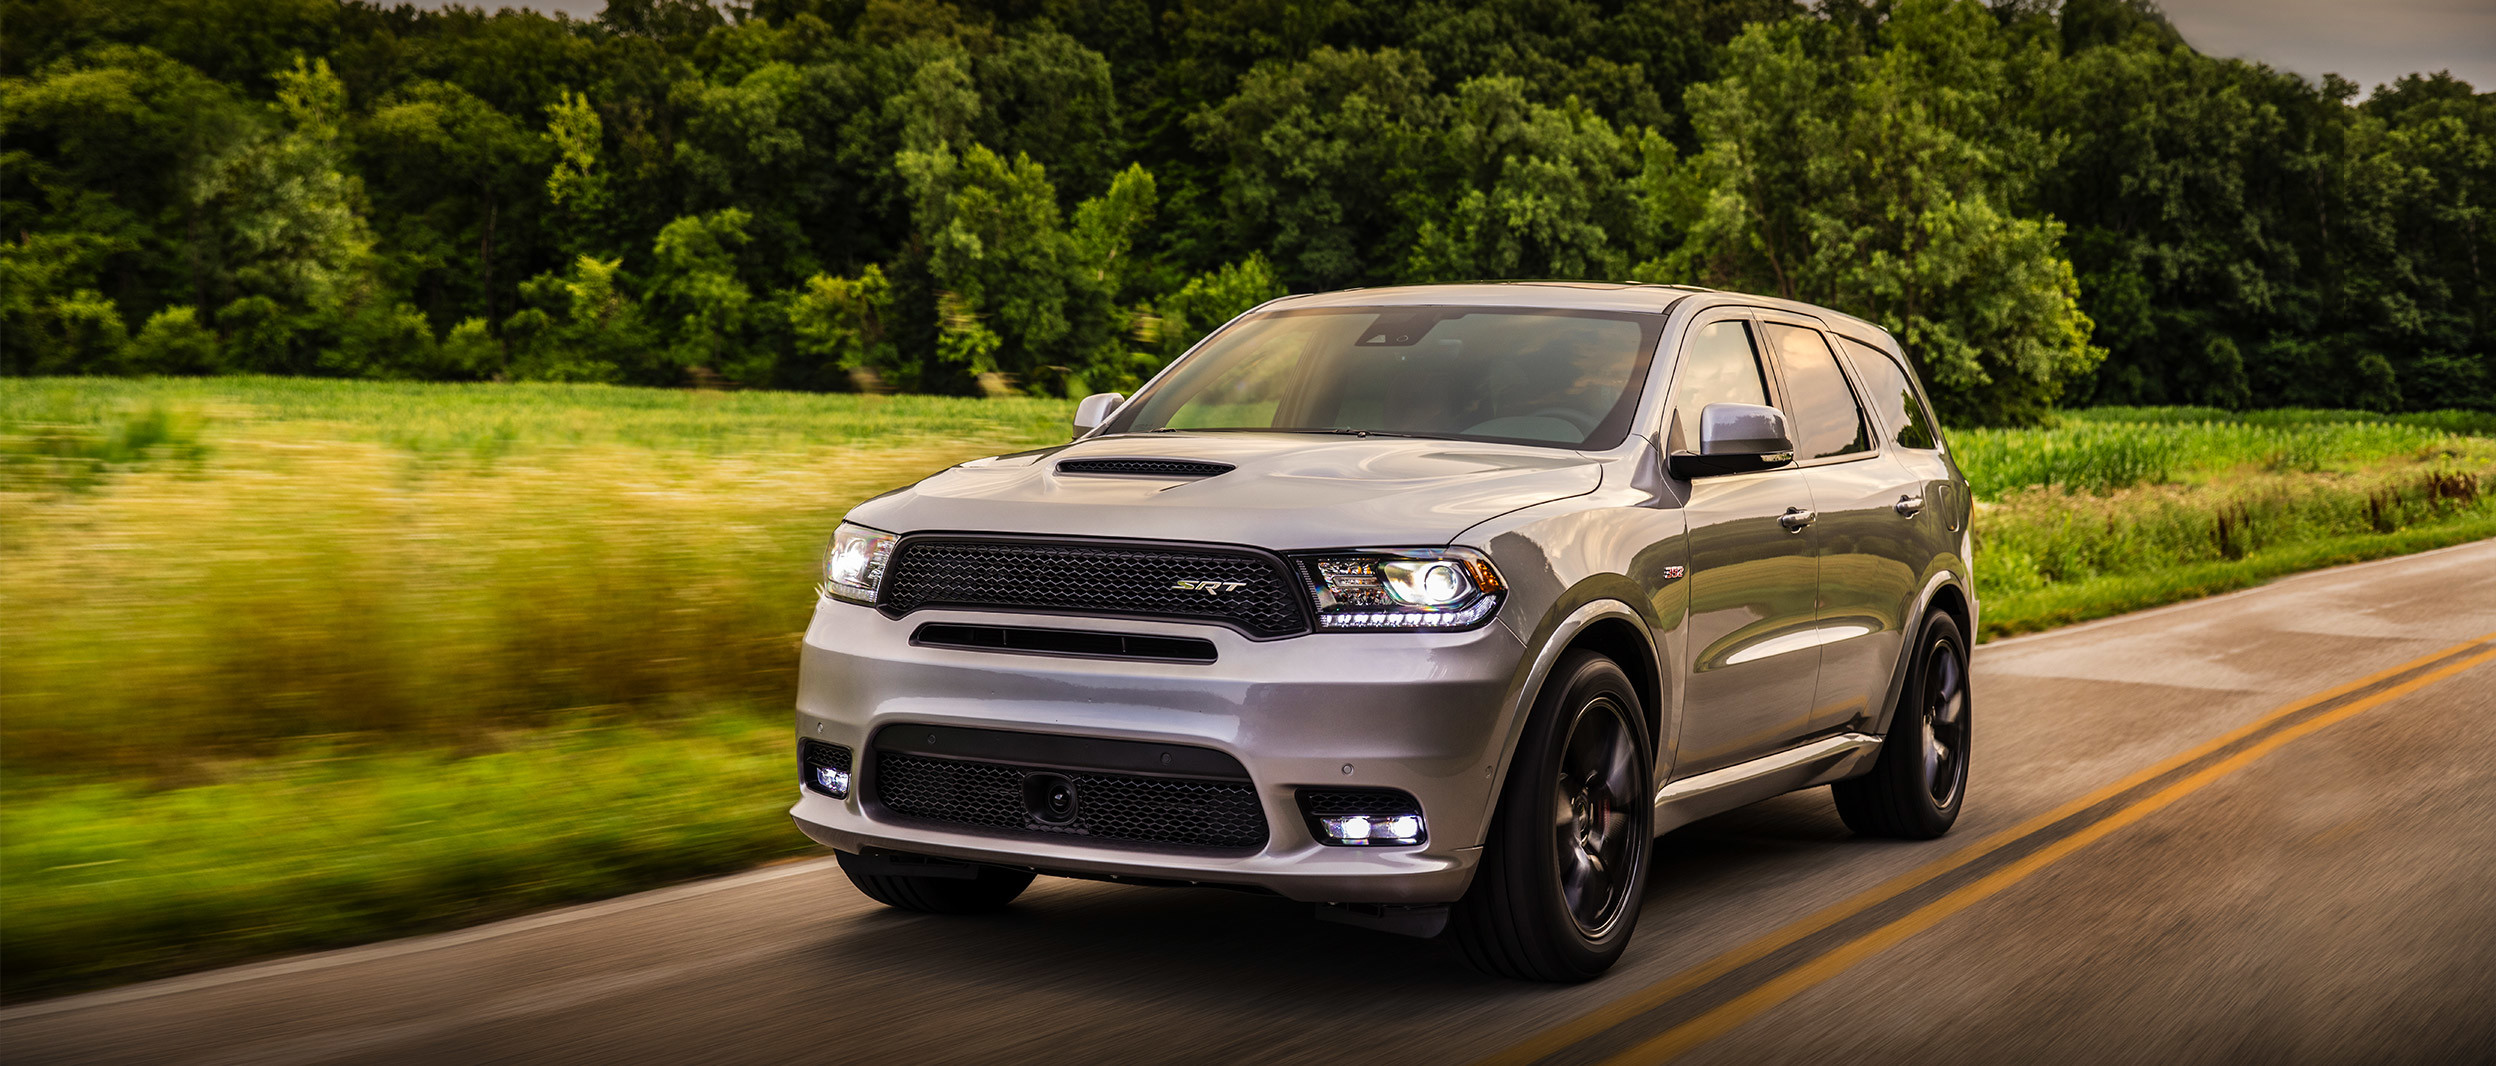 Grey 2020 Dodge Durango being driven on a country road next to a field and trees